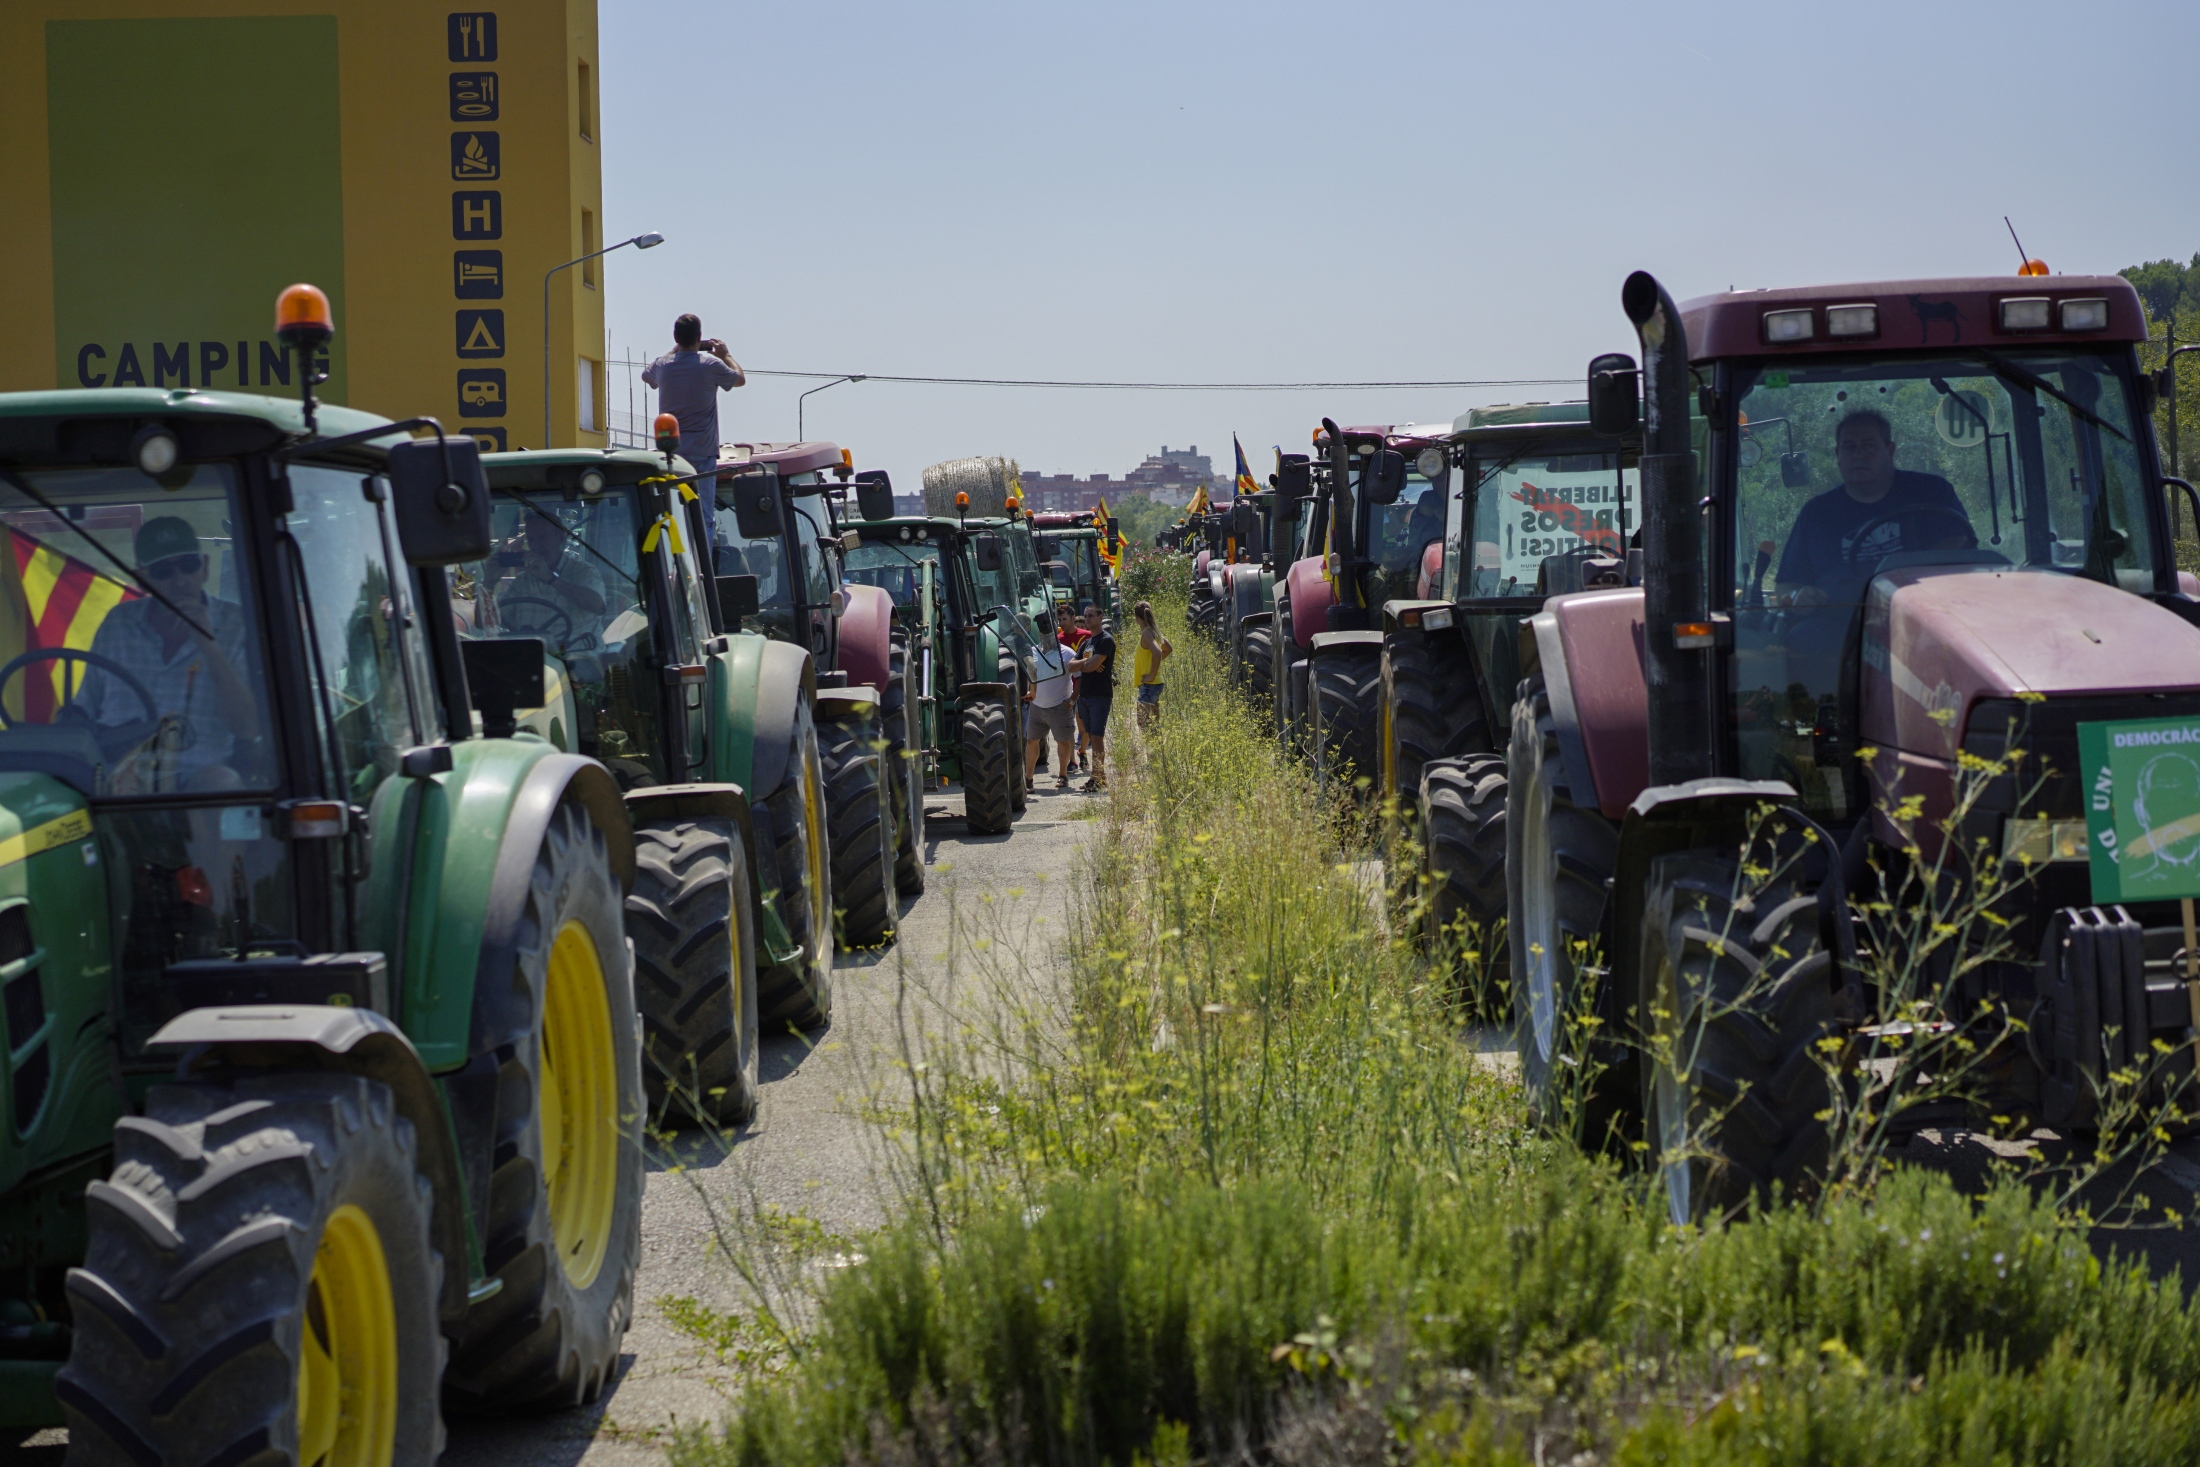 A tractor Caravan organized by the Catalan Farmers Union.